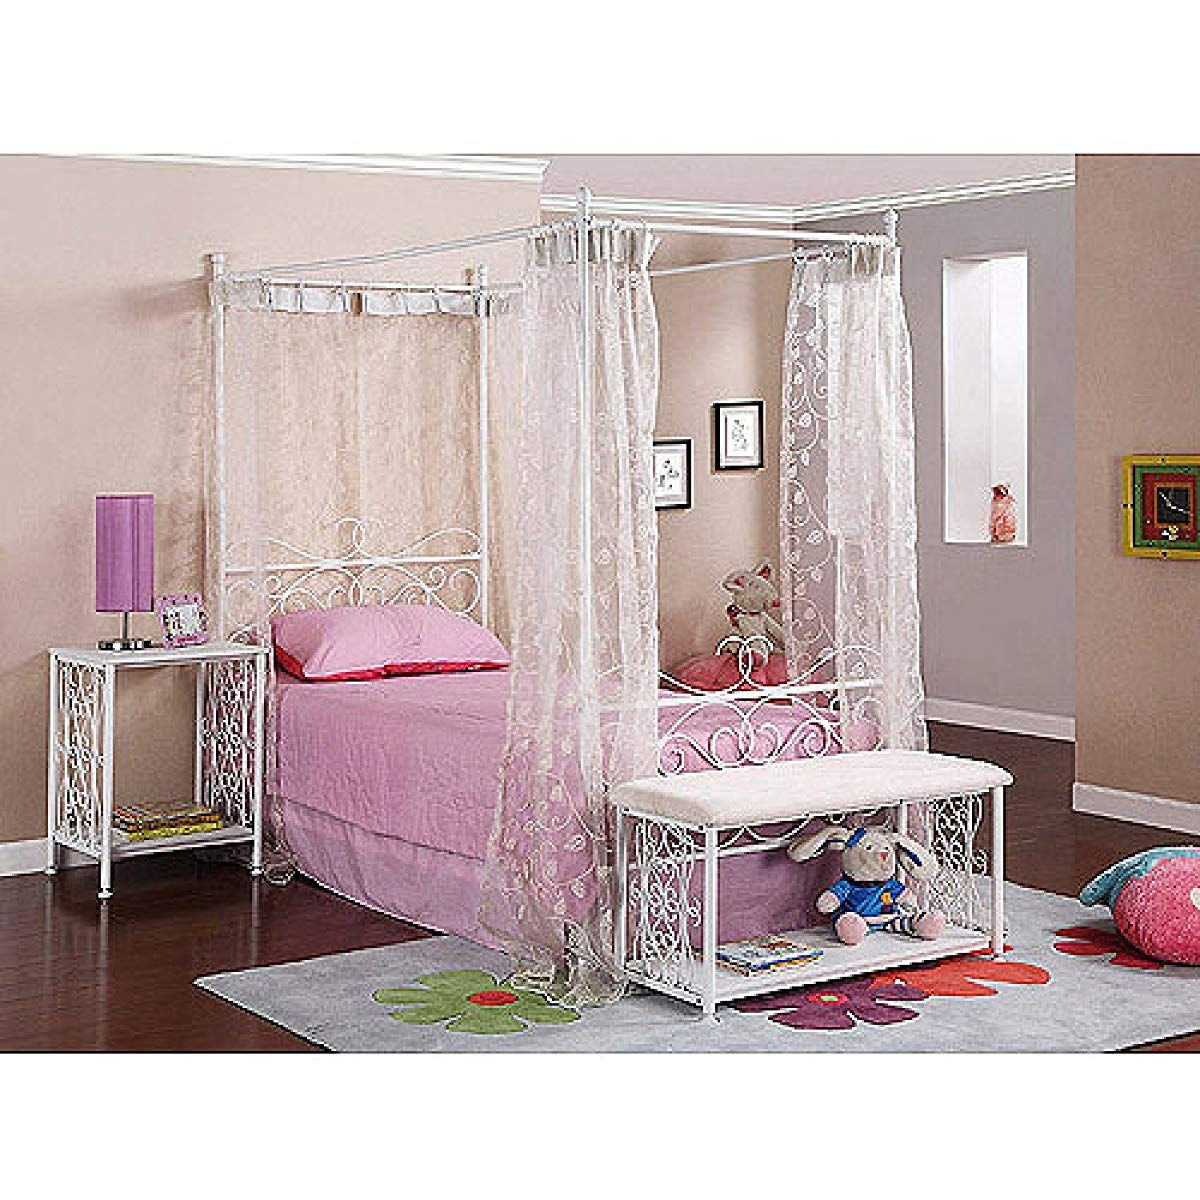 Canopy Wrought Iron Princess Bed White Canopy Bed Frame